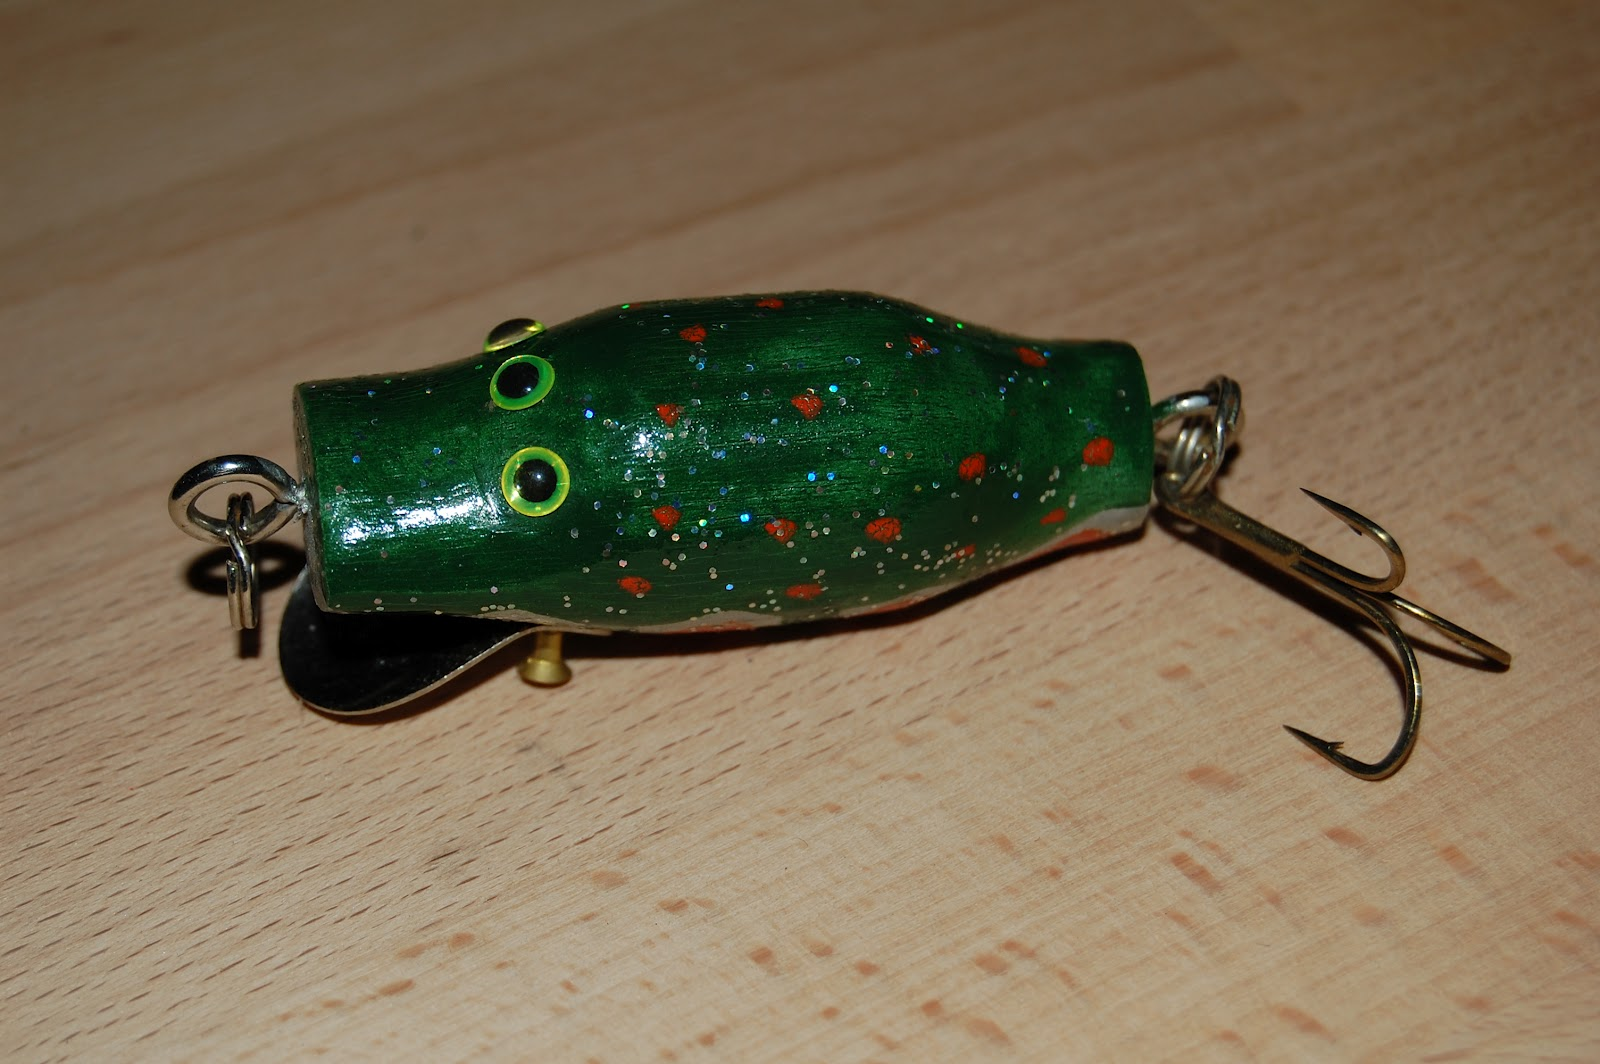 Acts Of Random Whittling Whittled Fishing Lures